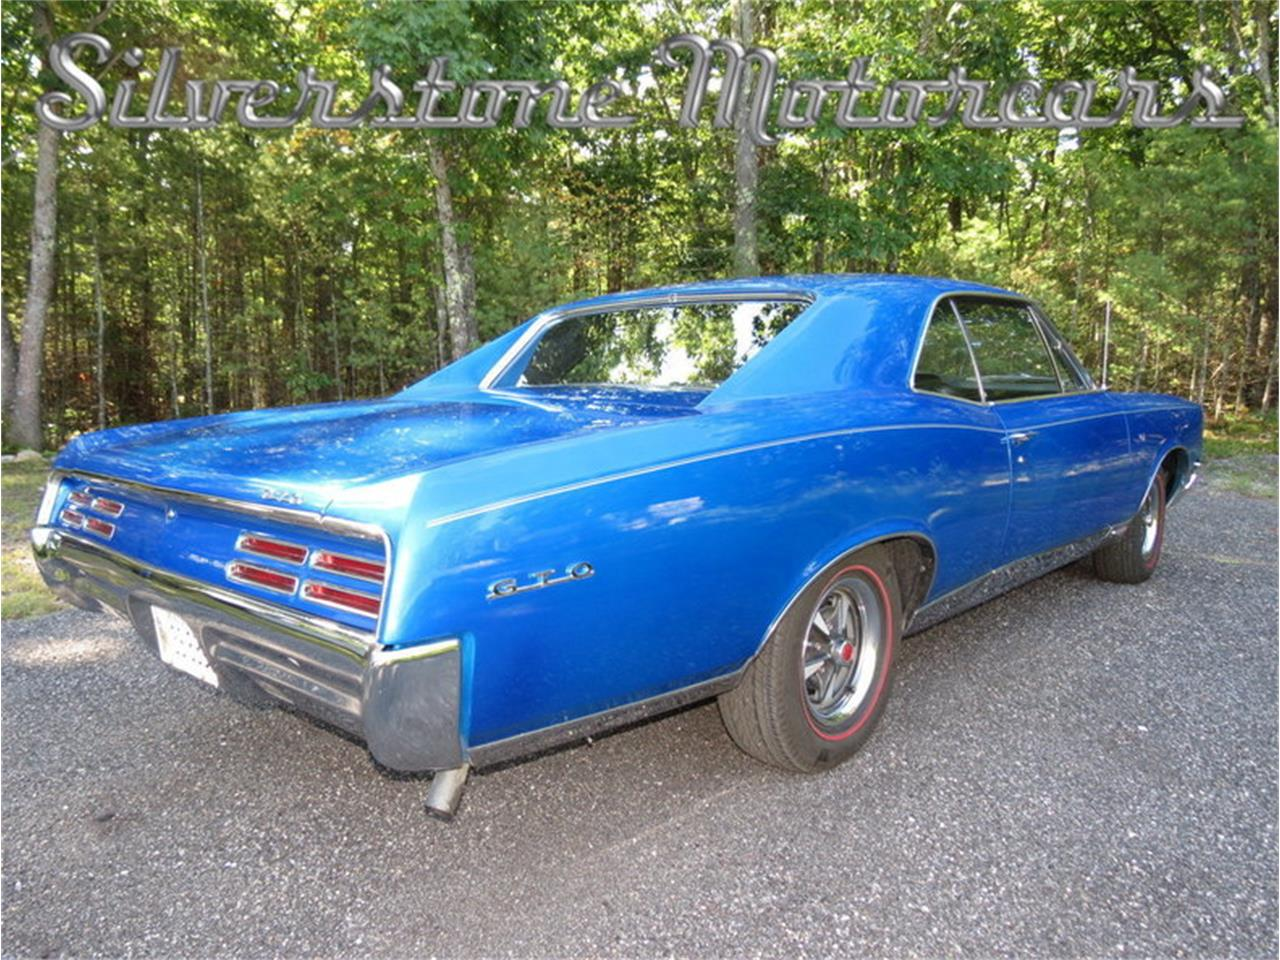 Large Picture of 1967 Pontiac GTO - $59,900.00 Offered by Silverstone Motorcars - JG3G